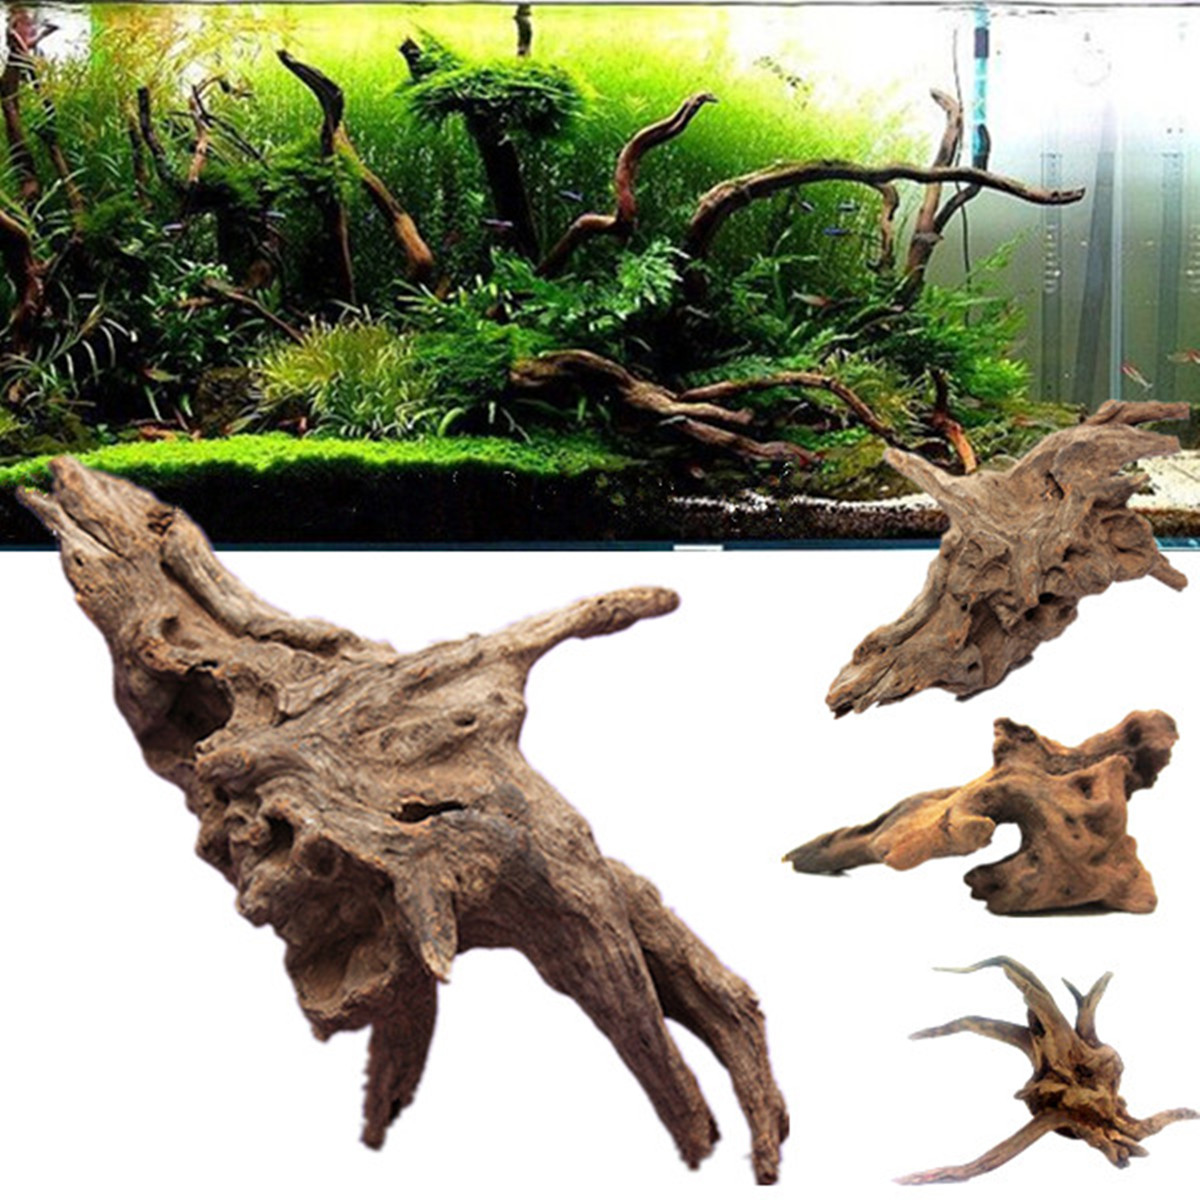 cuckoo root stump tree trunk driftwood for aquarium ornament fish tank decor ebay